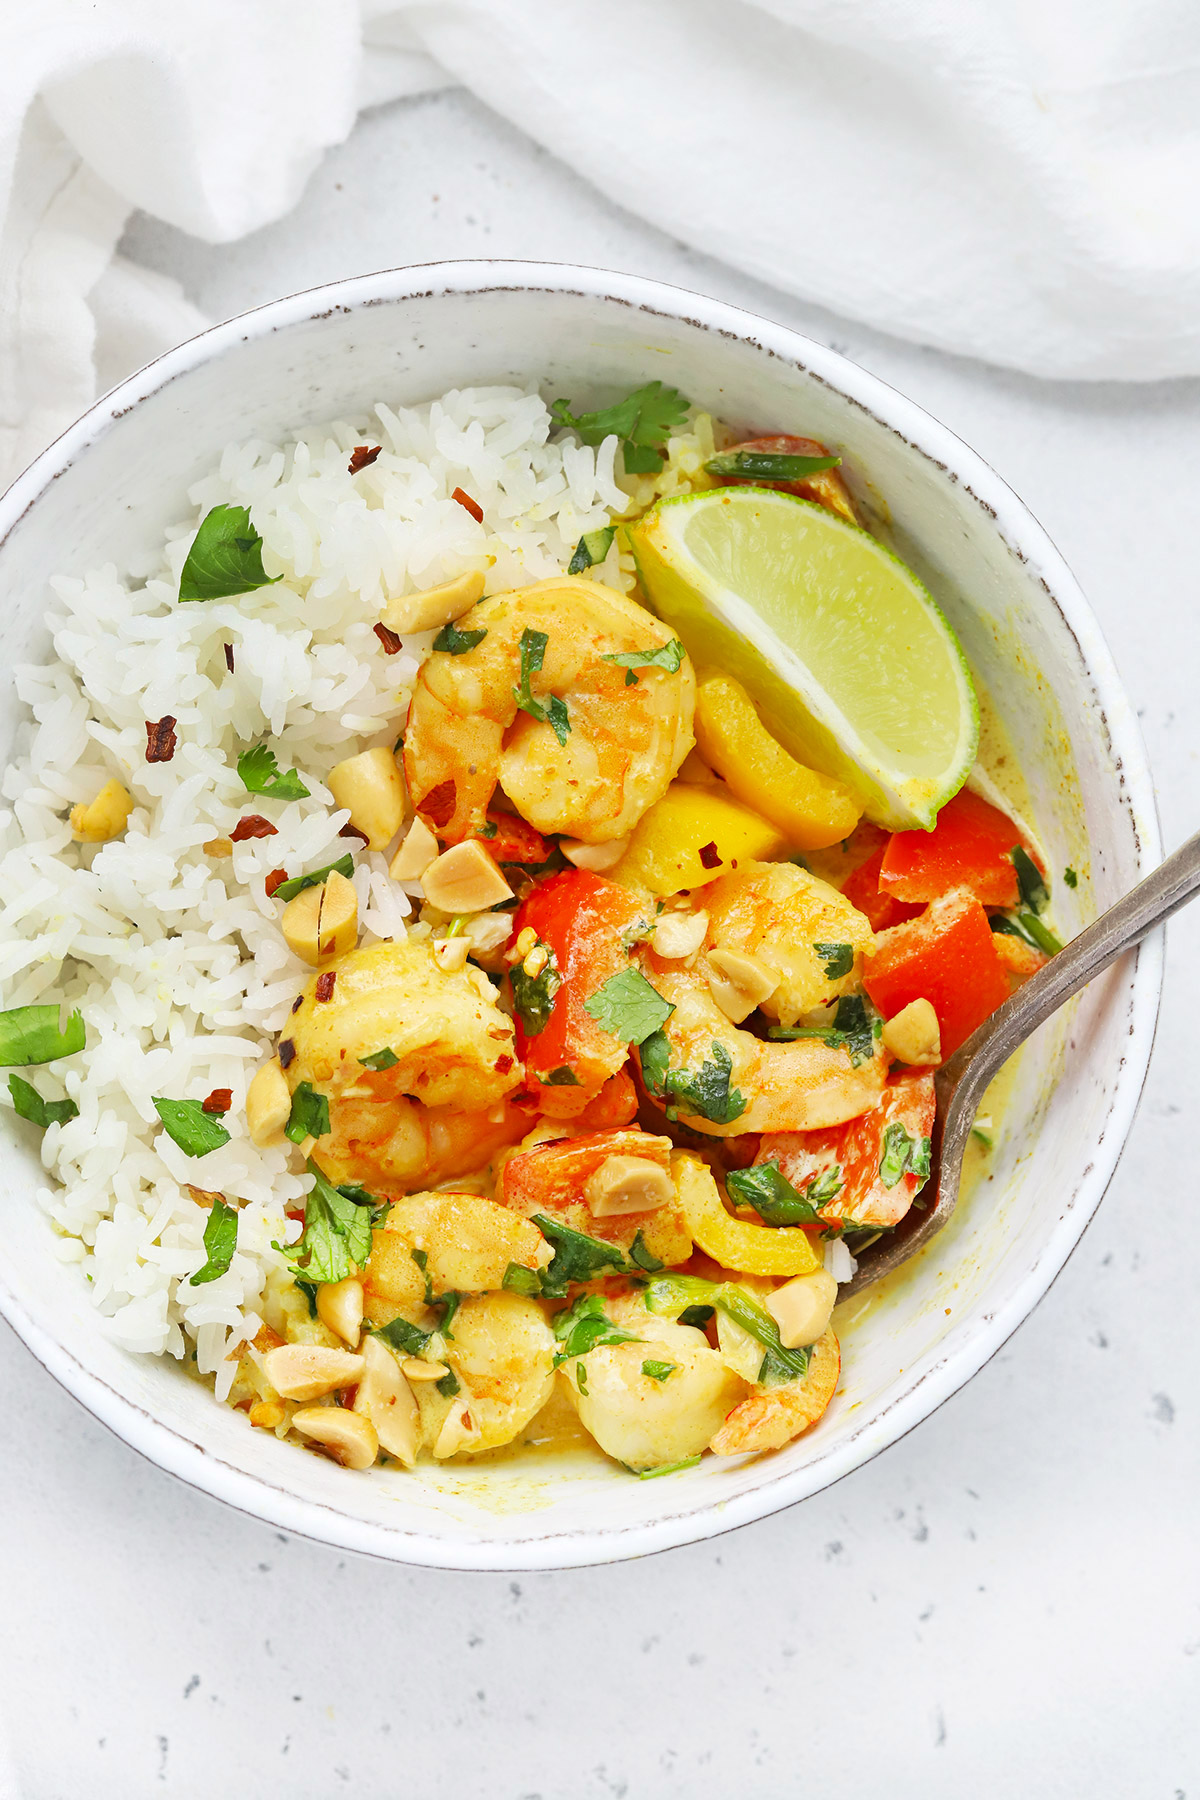 Overhead view of a bowl of paleo coconut shrimp curry with colorful veggies, crushed peanuts, and a fresh lime wedge